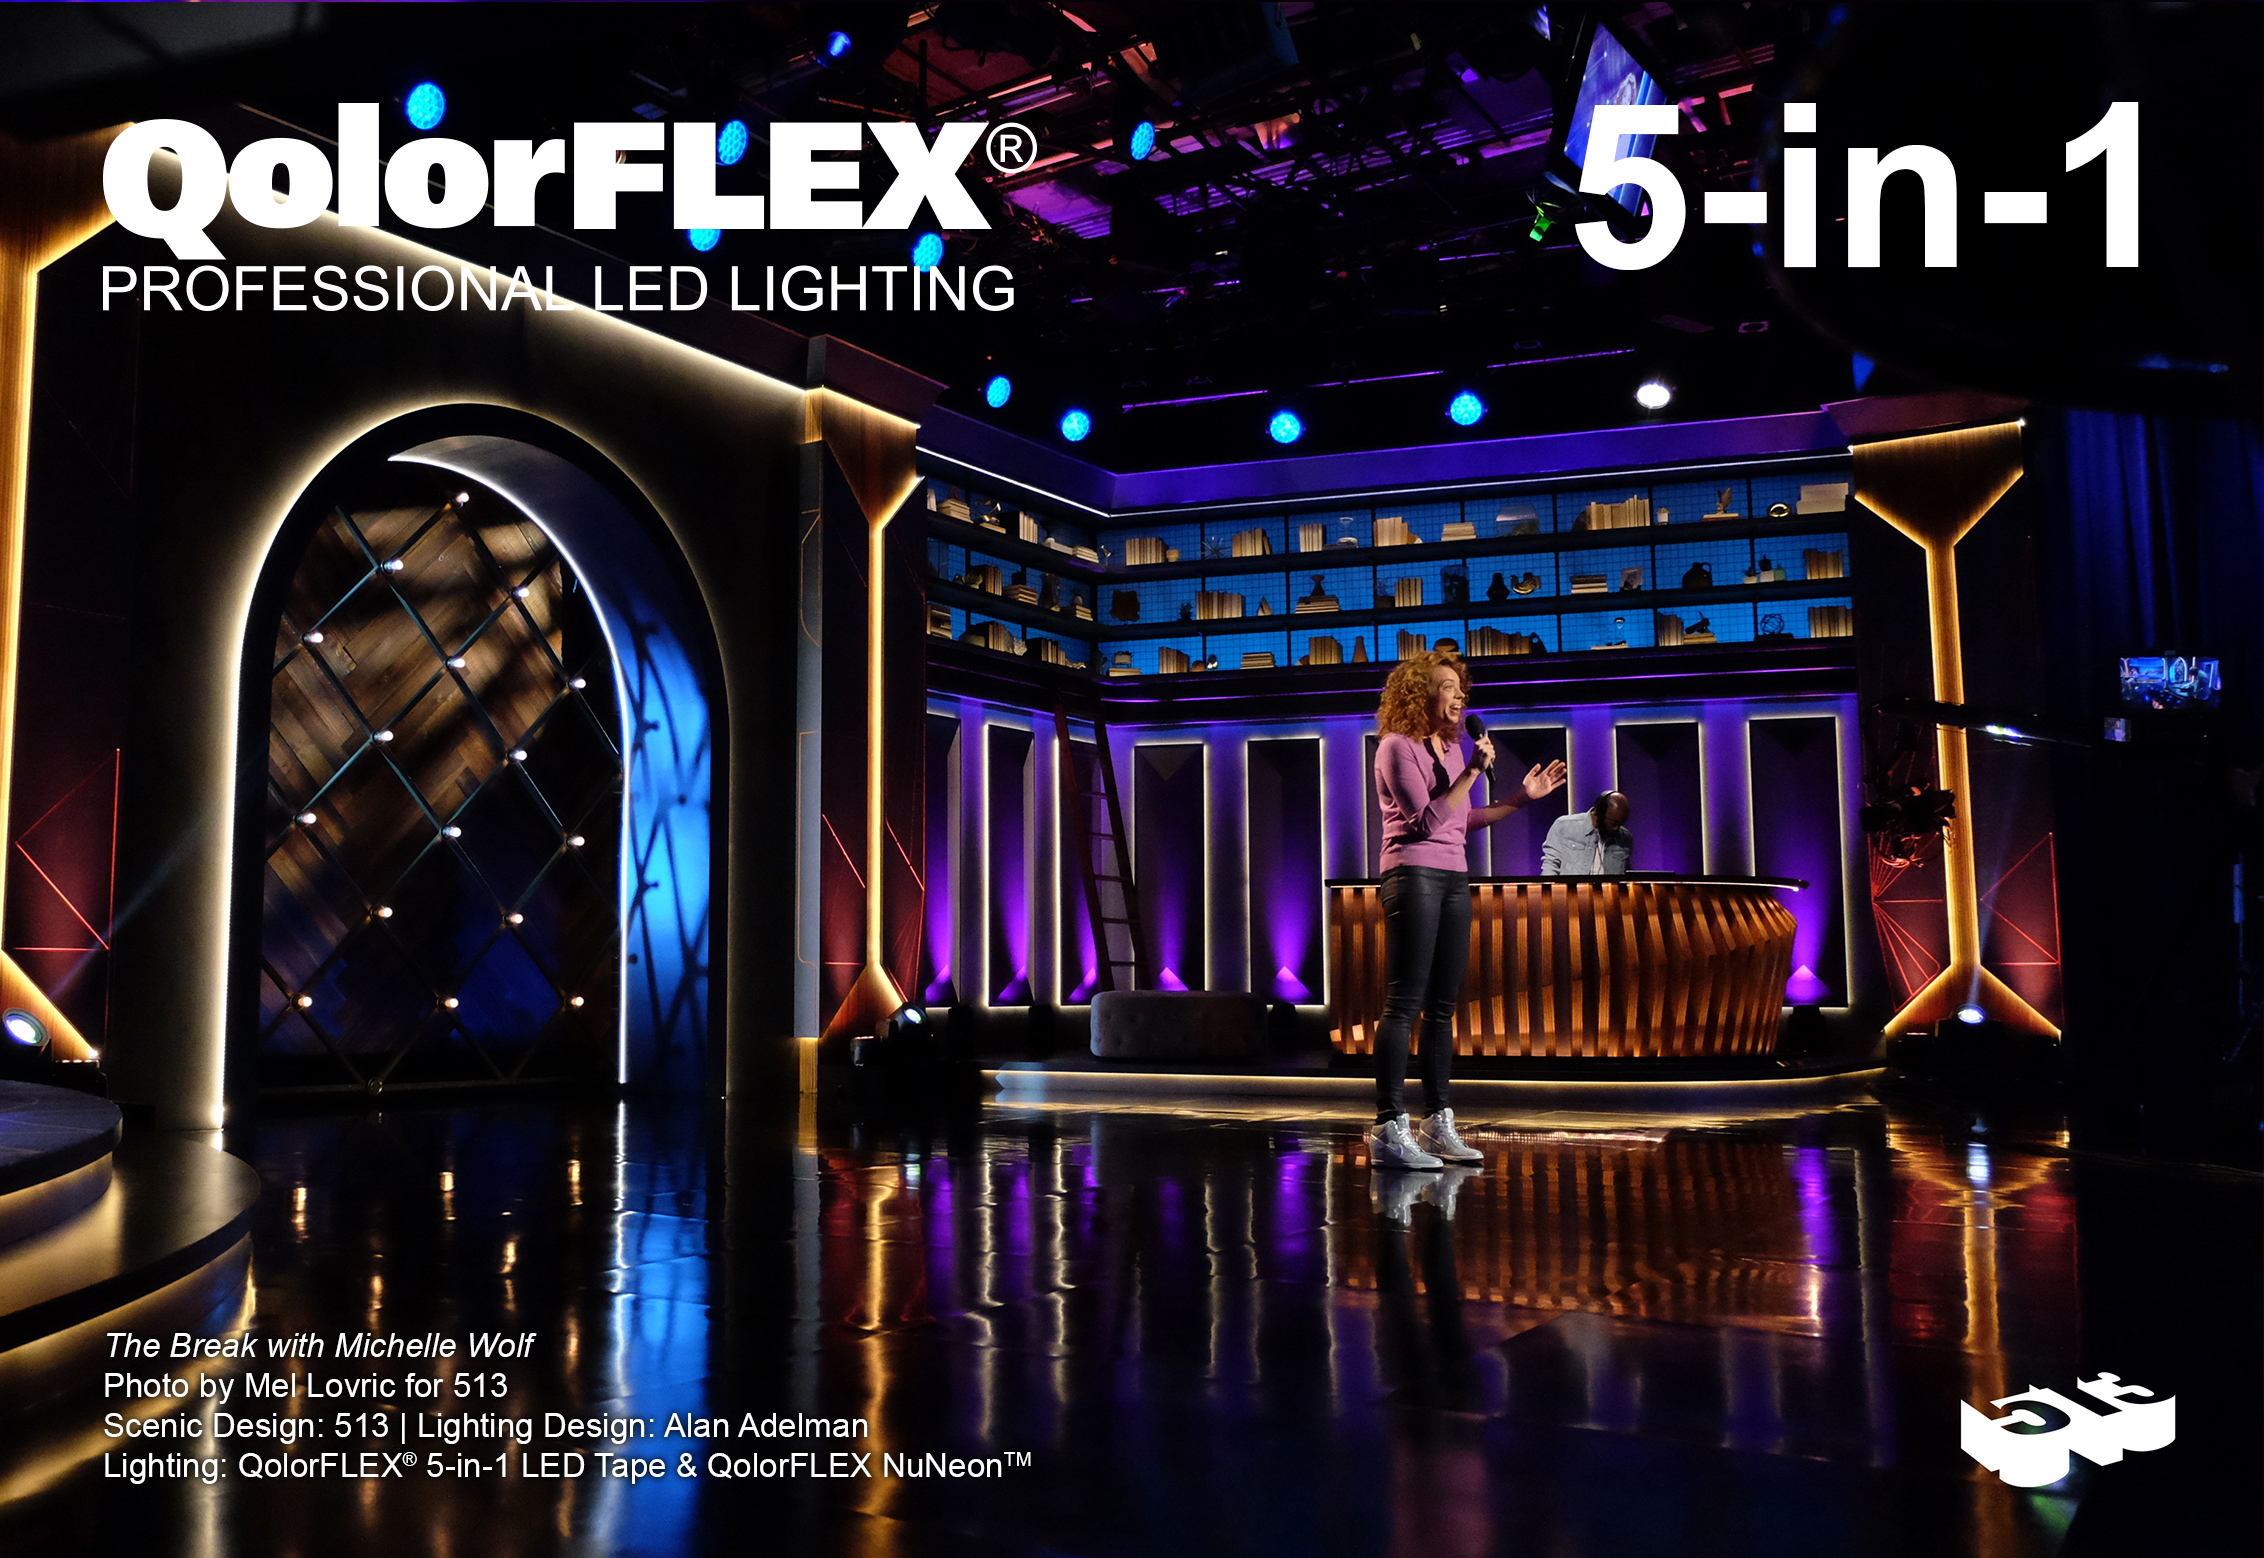 QolorFLEX 5-in-1 LED Tape on The Break with Michelle Wolf